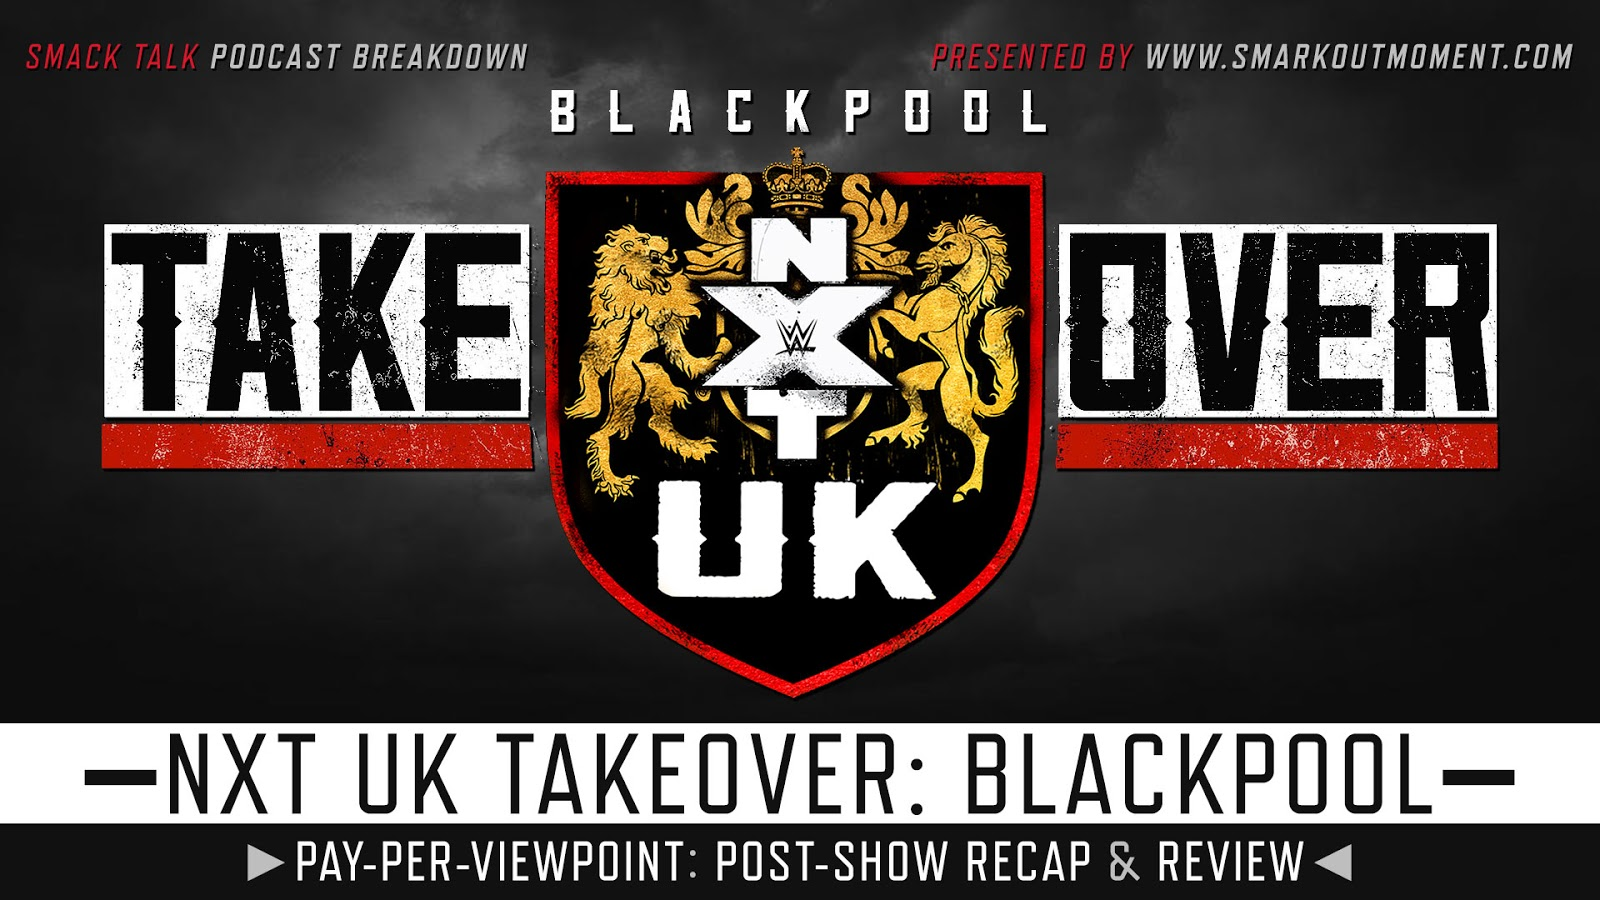 WWE NXT UK TakeOver: Blackpool 2019 Recap and Review Podcast